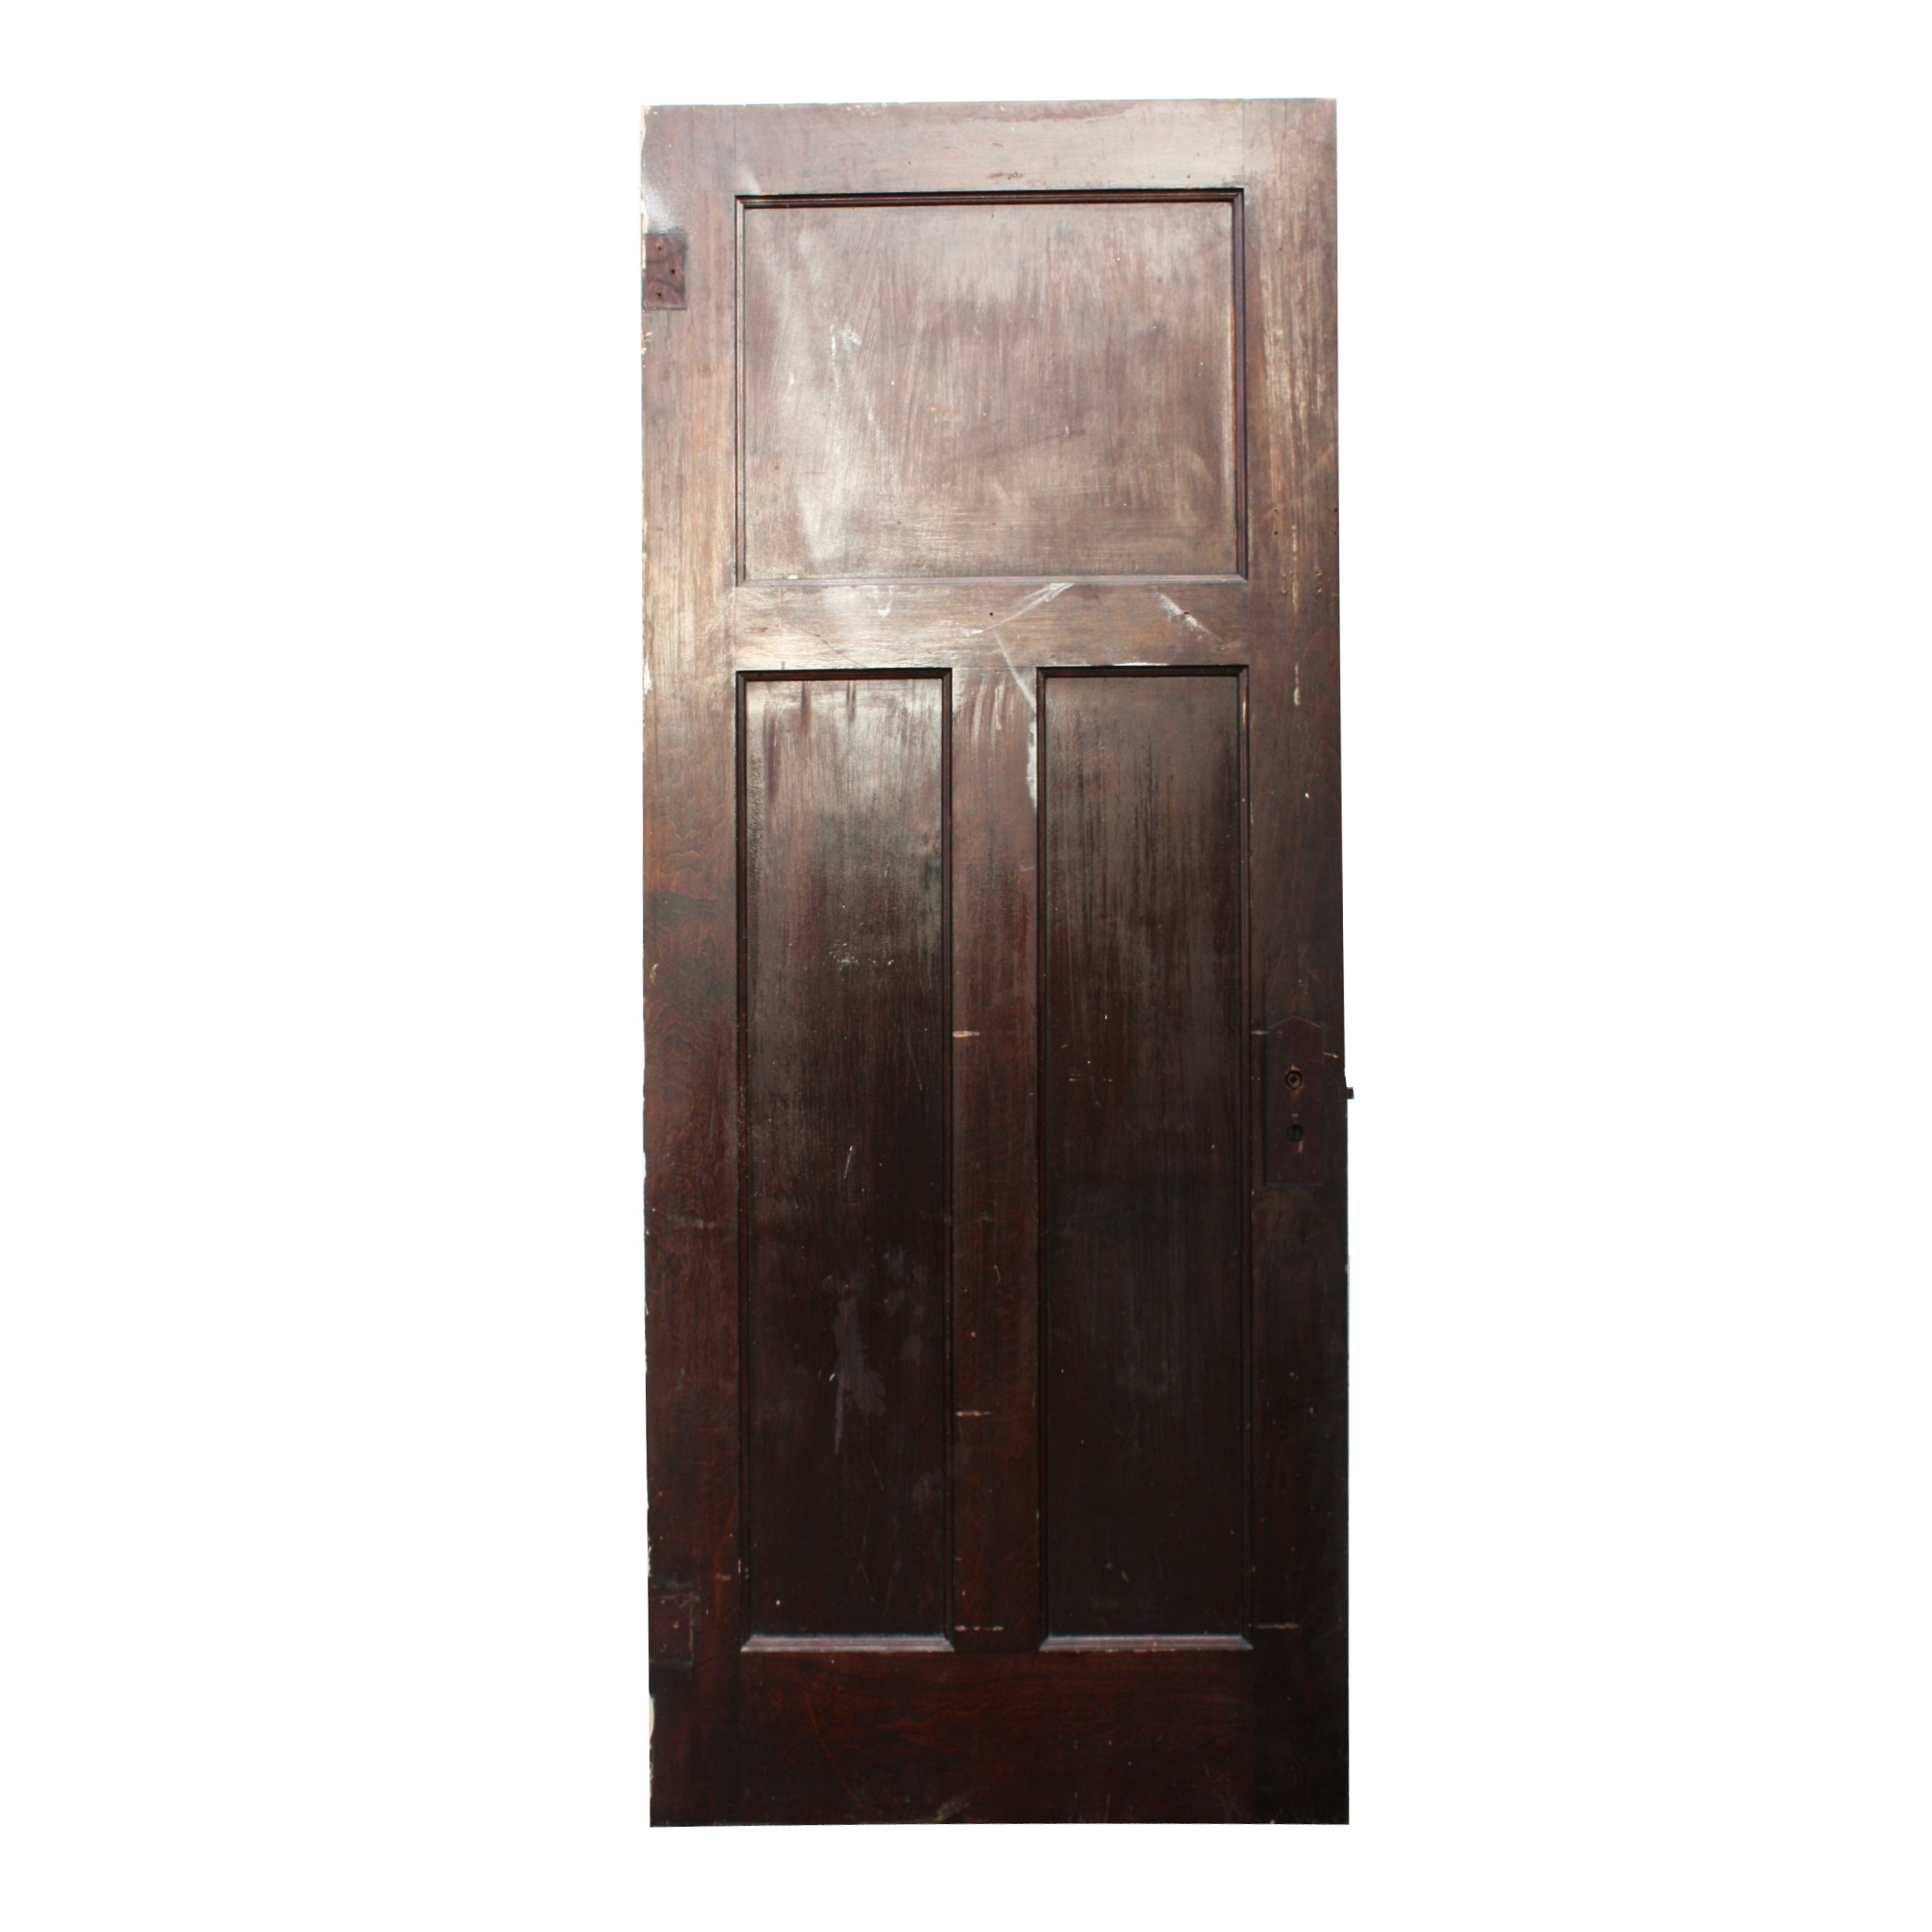 Antique three panel solid wood door stained finish nid27 for Vintage solid wood doors